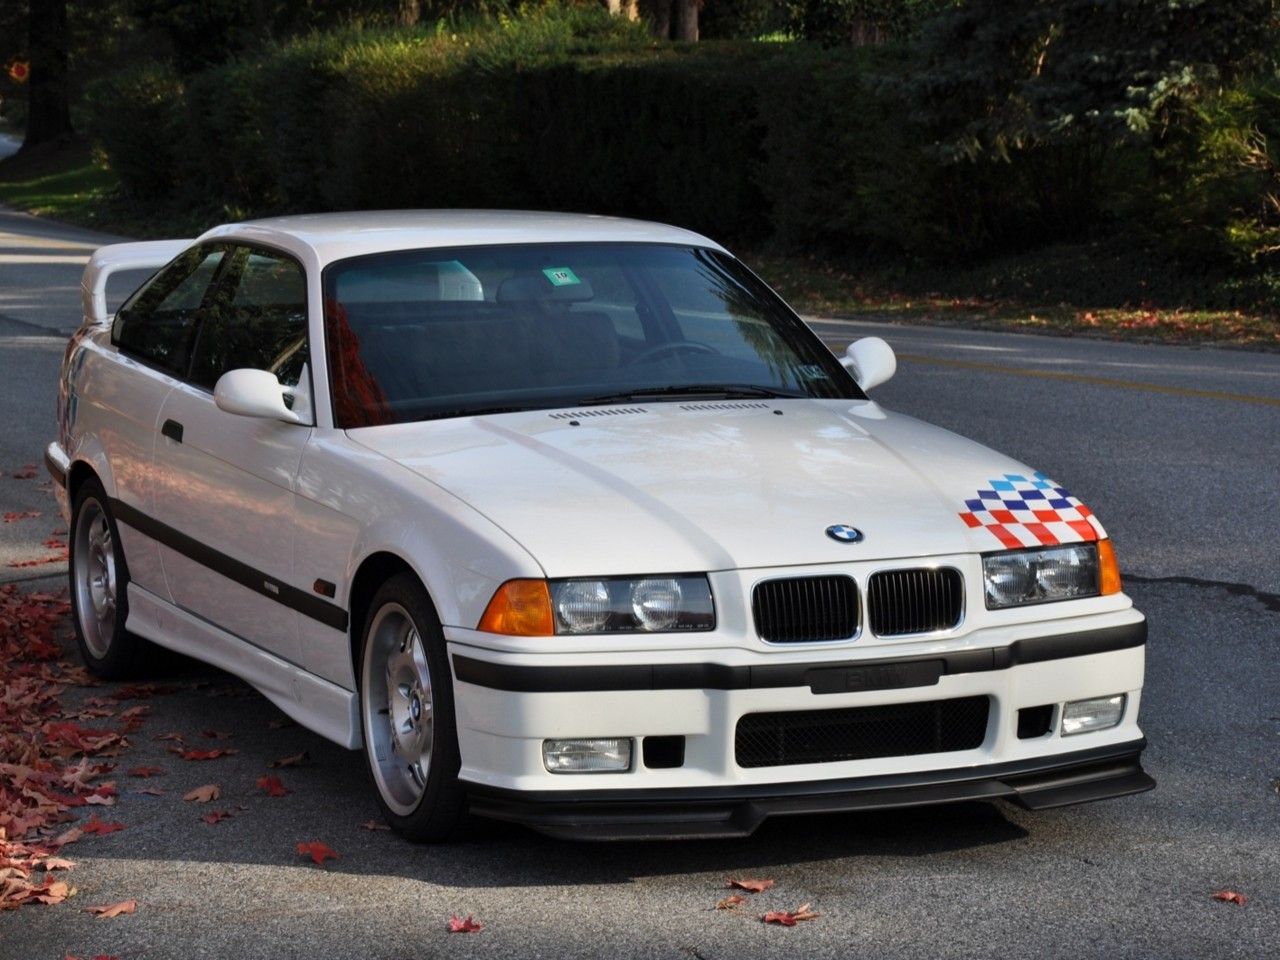 BMW M3 Lightweight E36 Wallpapers Car wallpapers HD 1280x960